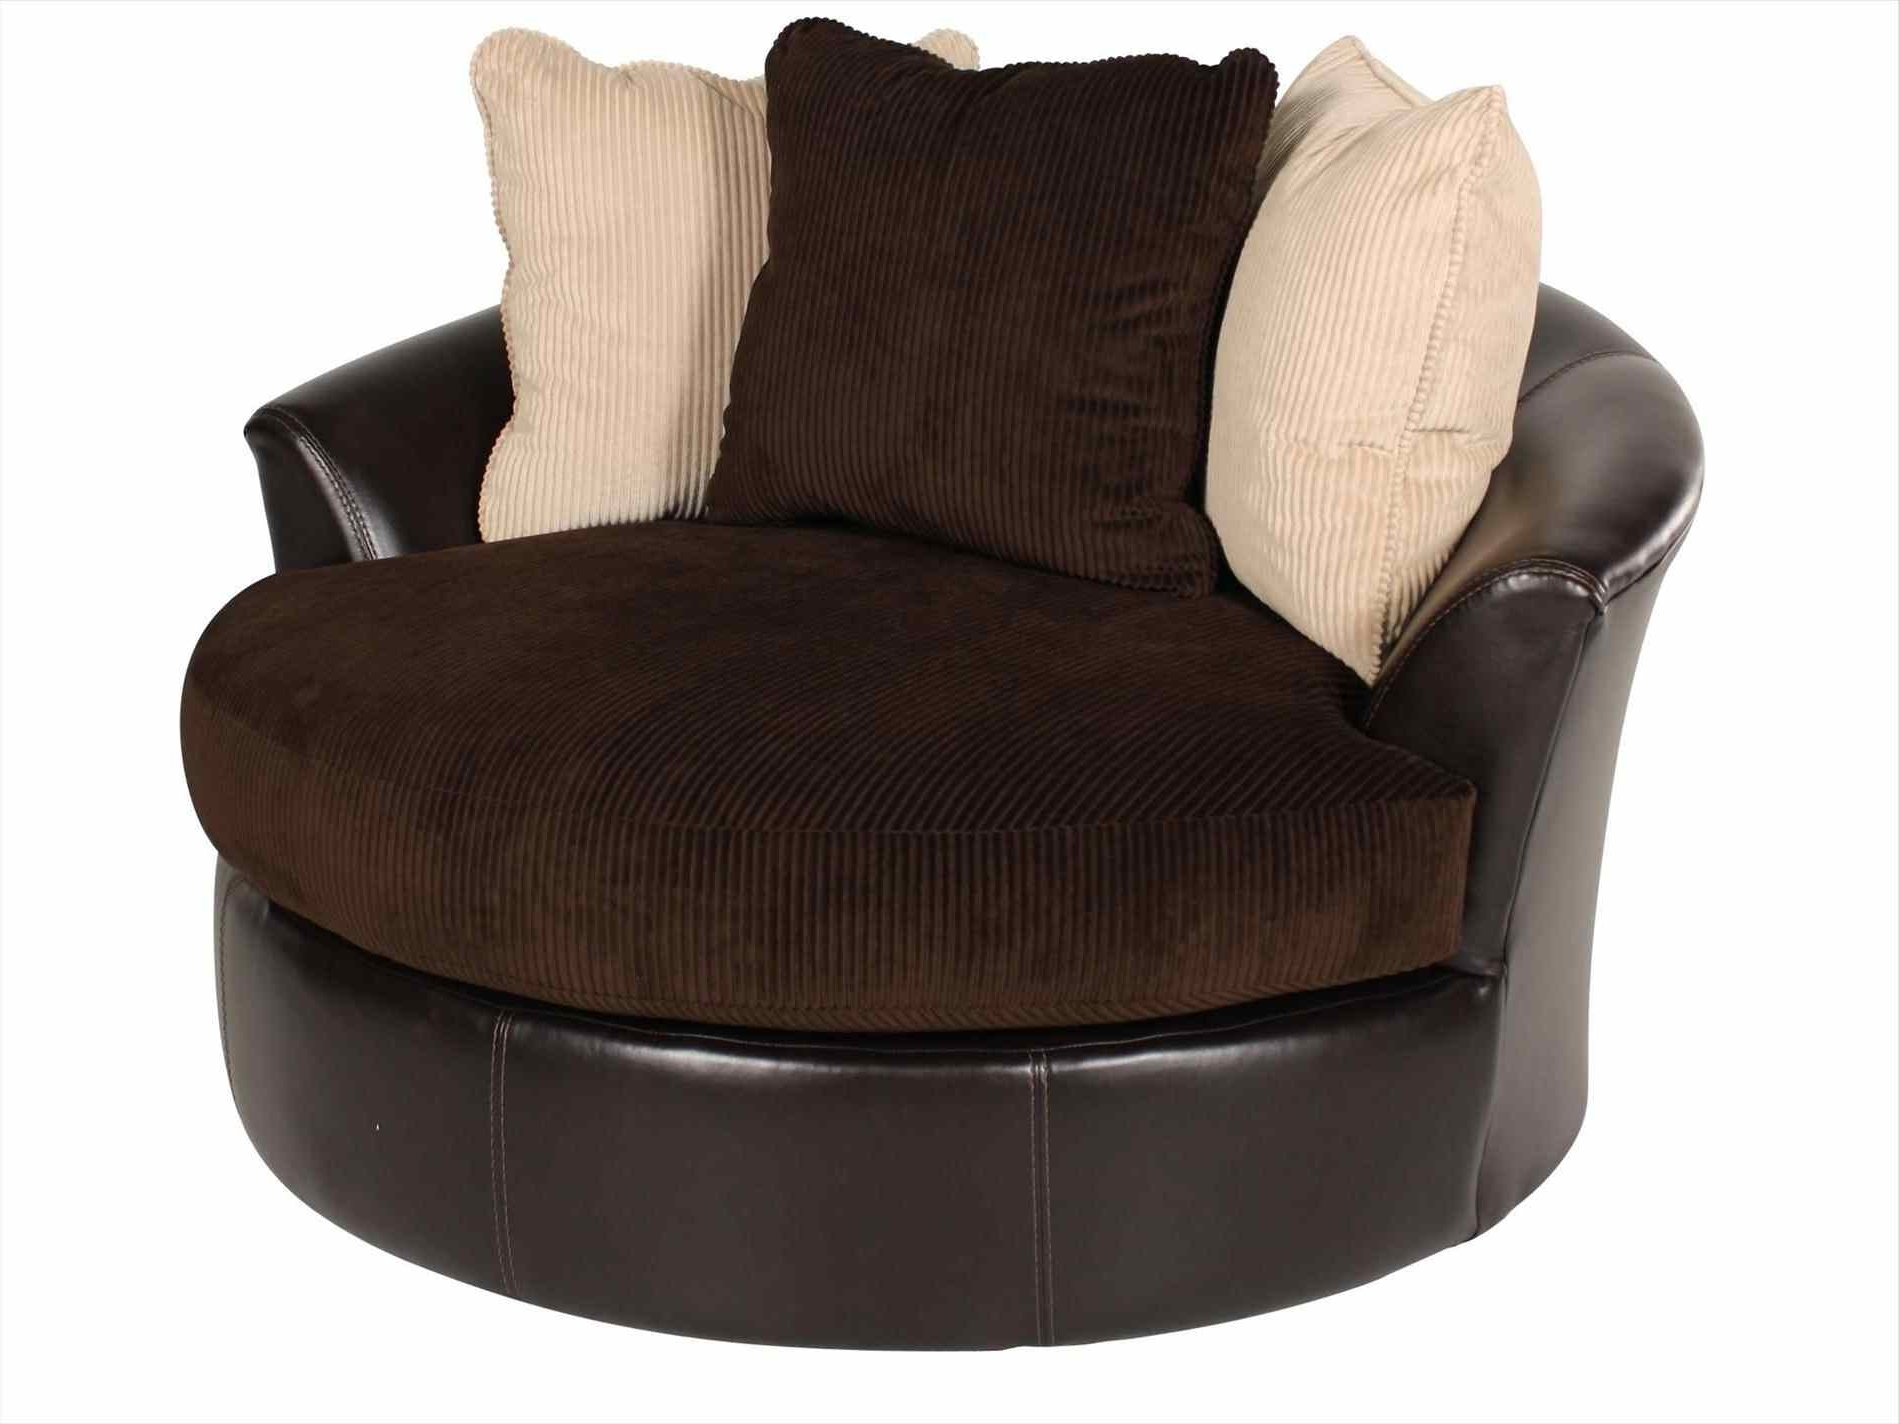 Popular Sofa : Round Spinning Sofa Chair Round Sofa Chair Dfs Giant Round Throughout Spinning Sofa Chairs (View 17 of 20)